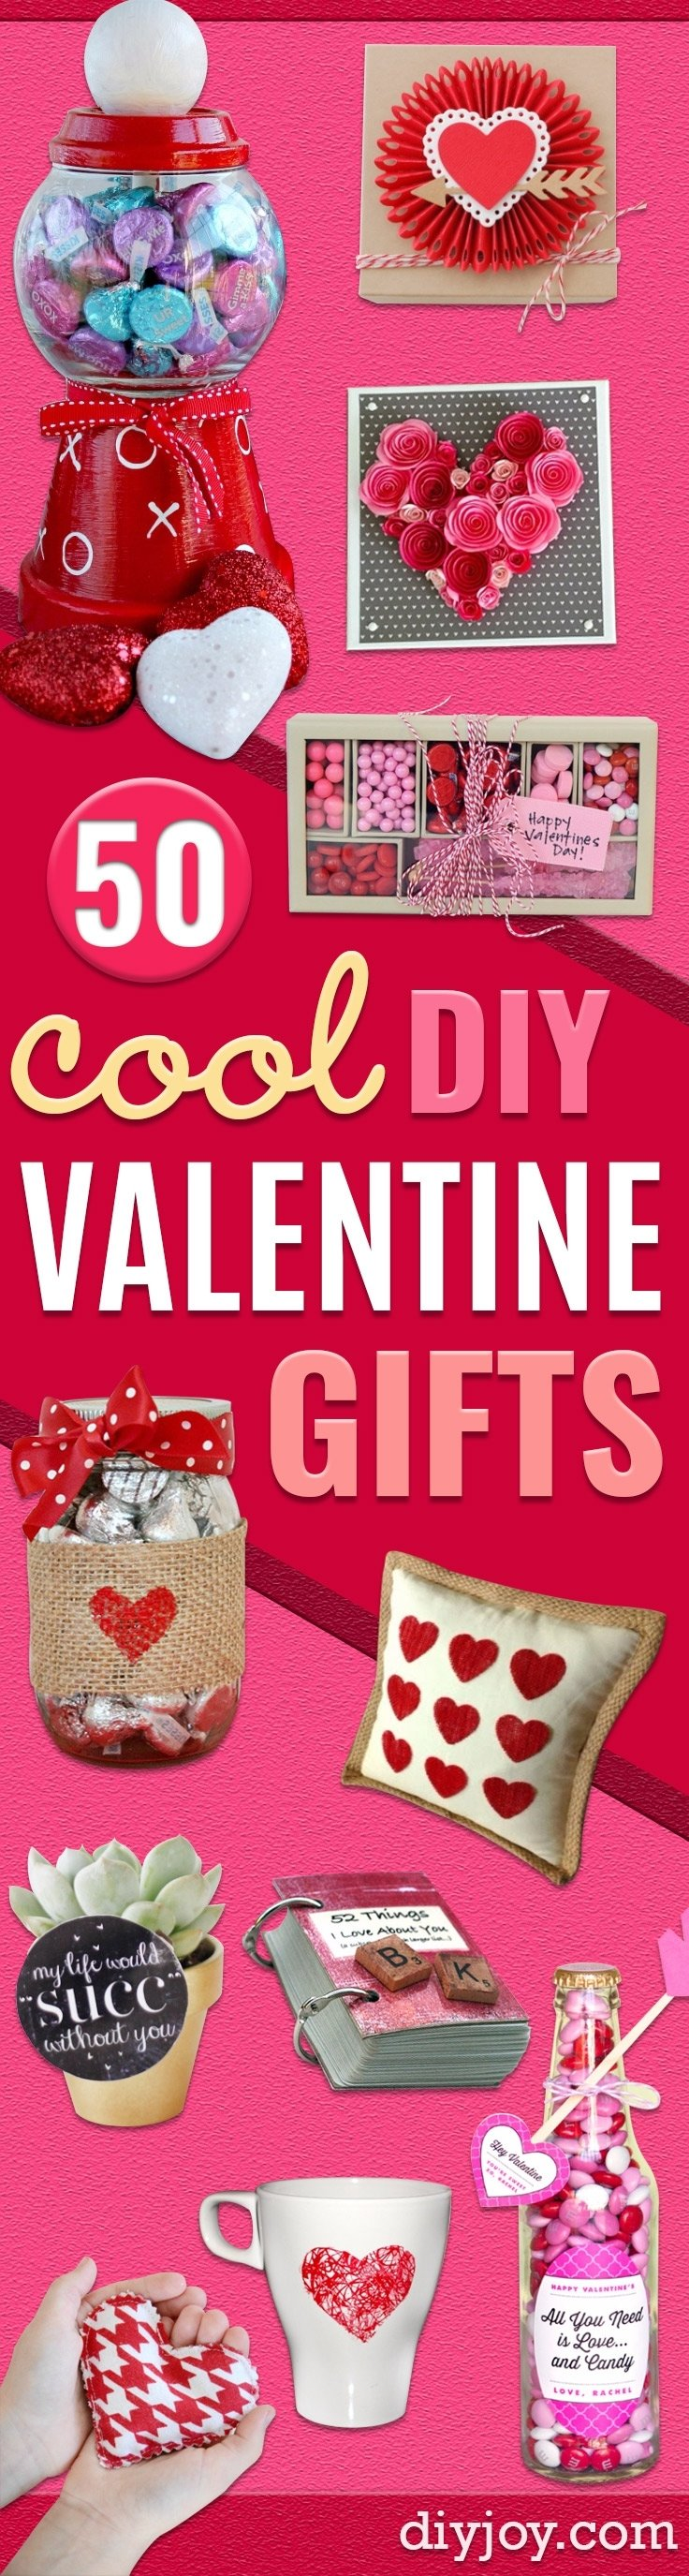 10 Great Valentines Gift Ideas For Mom 50 cool and easy diy valentines day gifts 2021